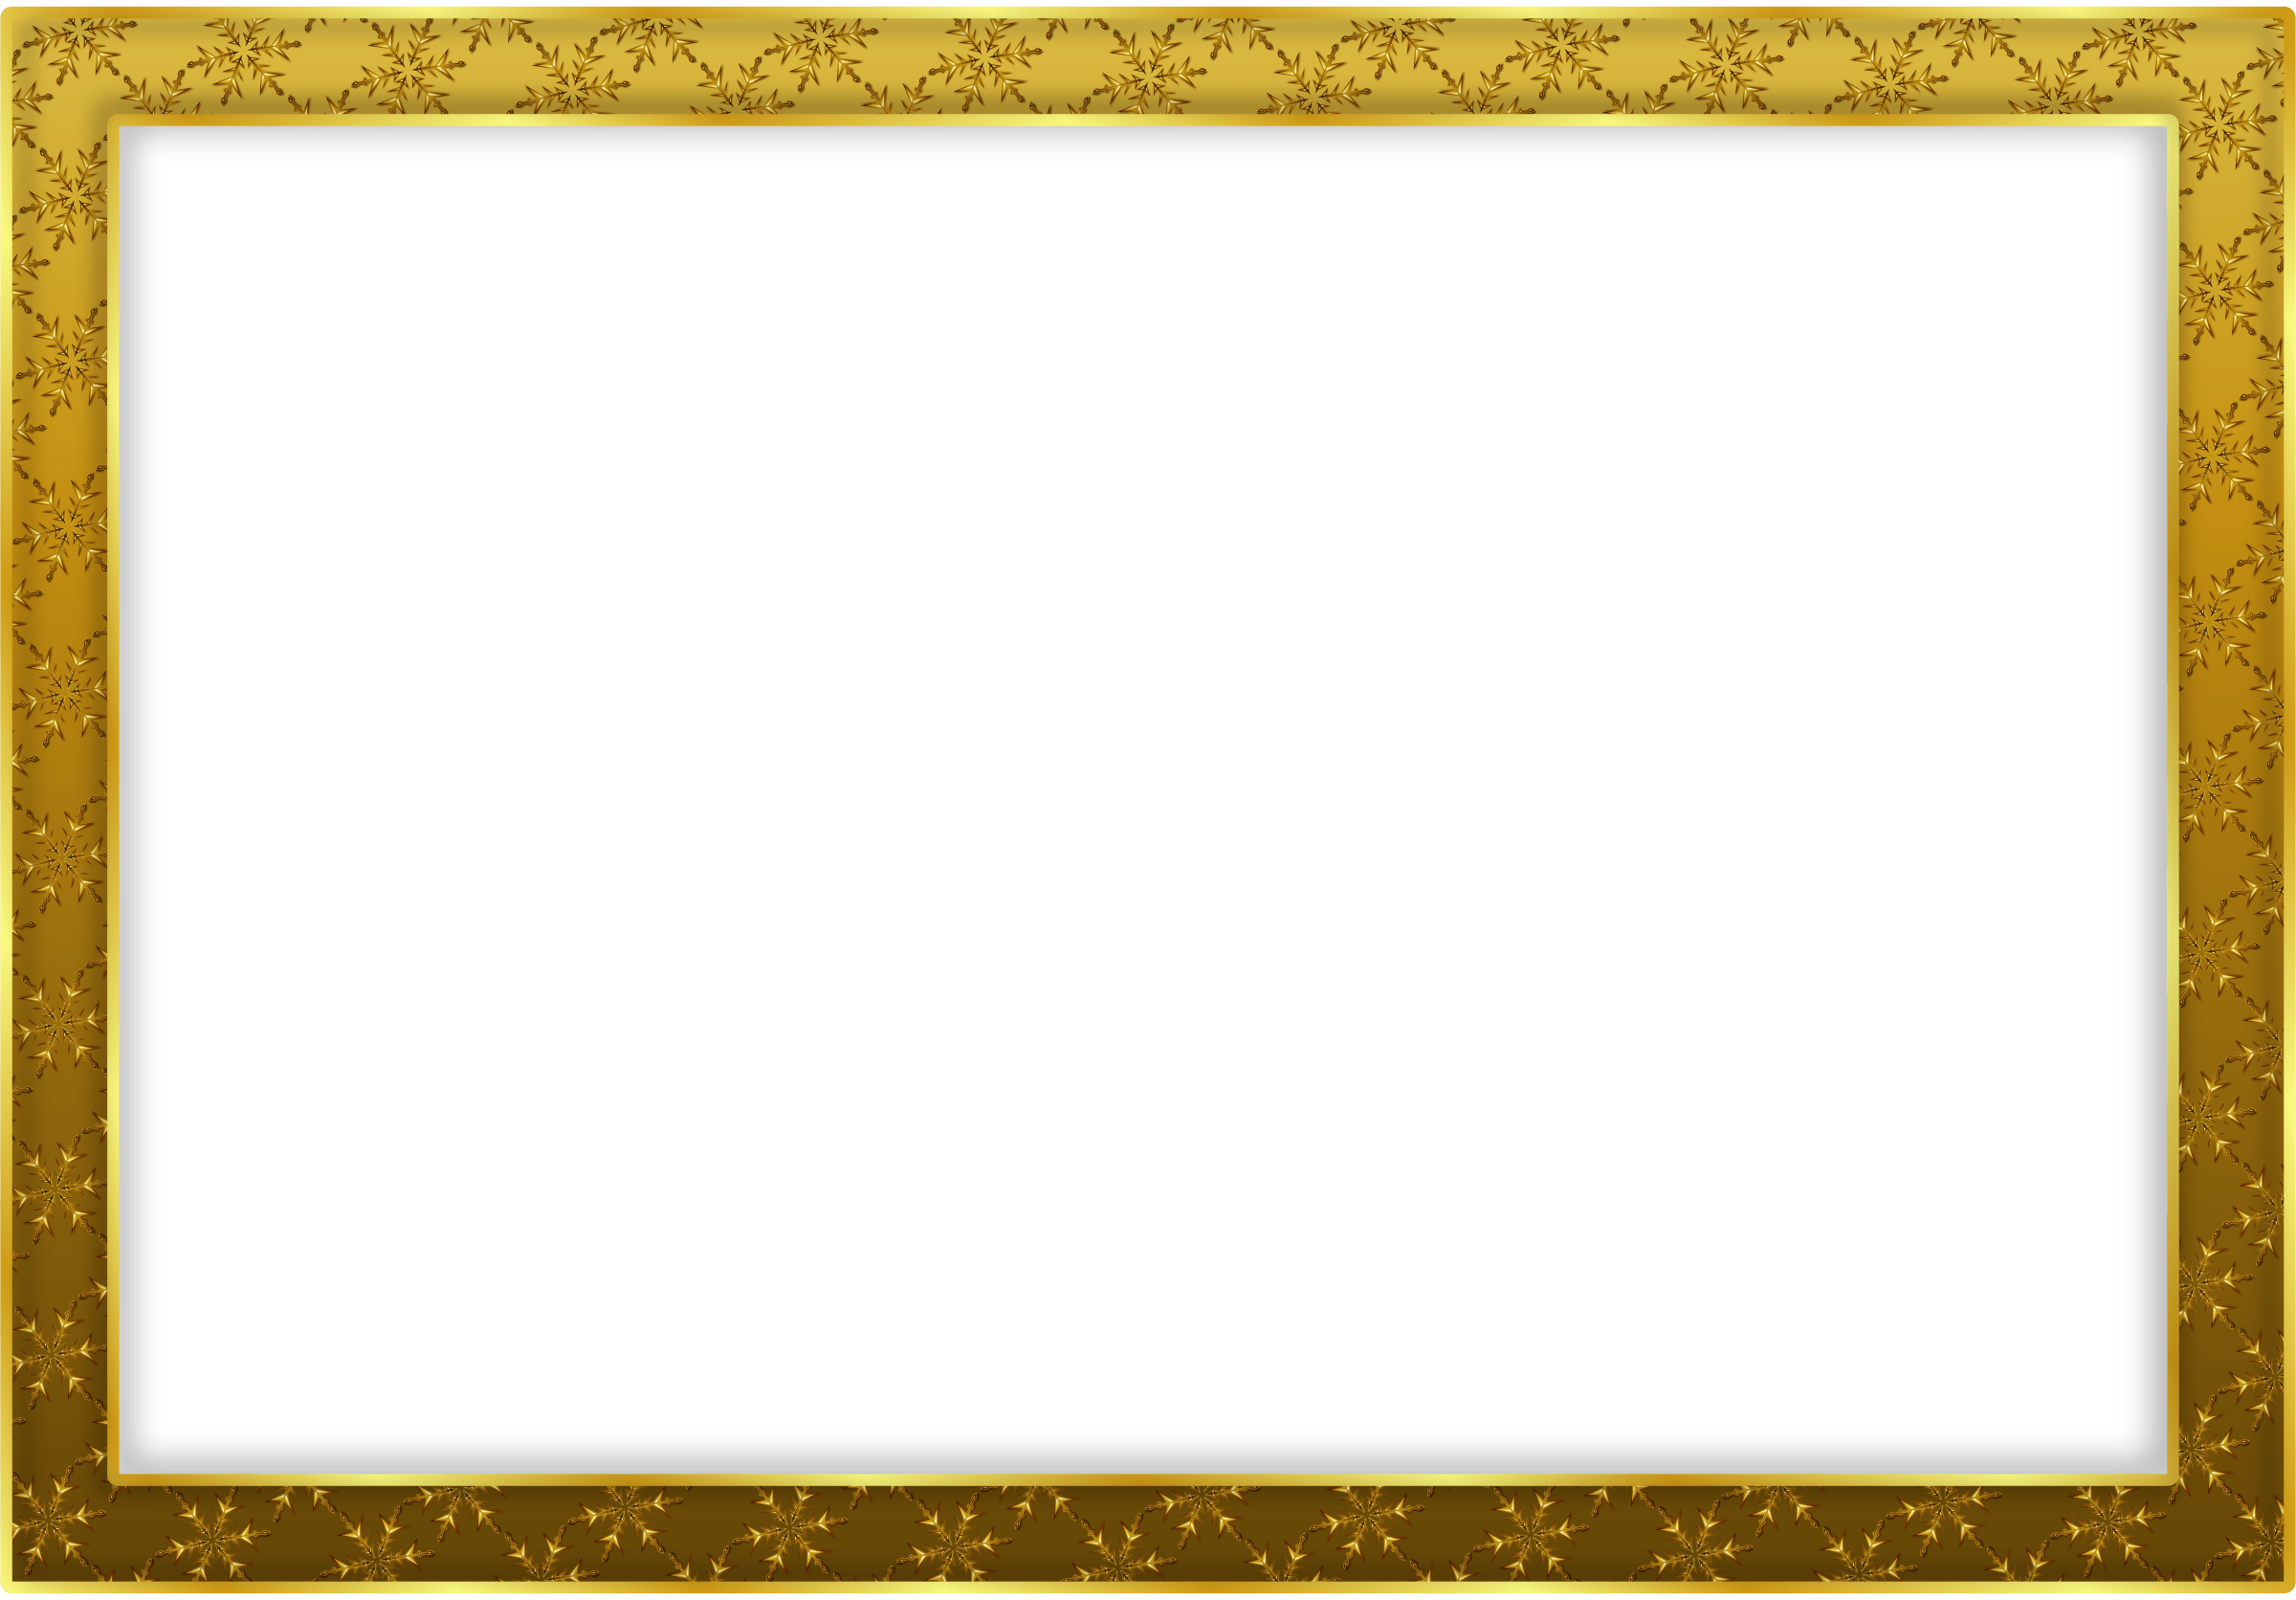 Simple gold landscape transparent. Png frame